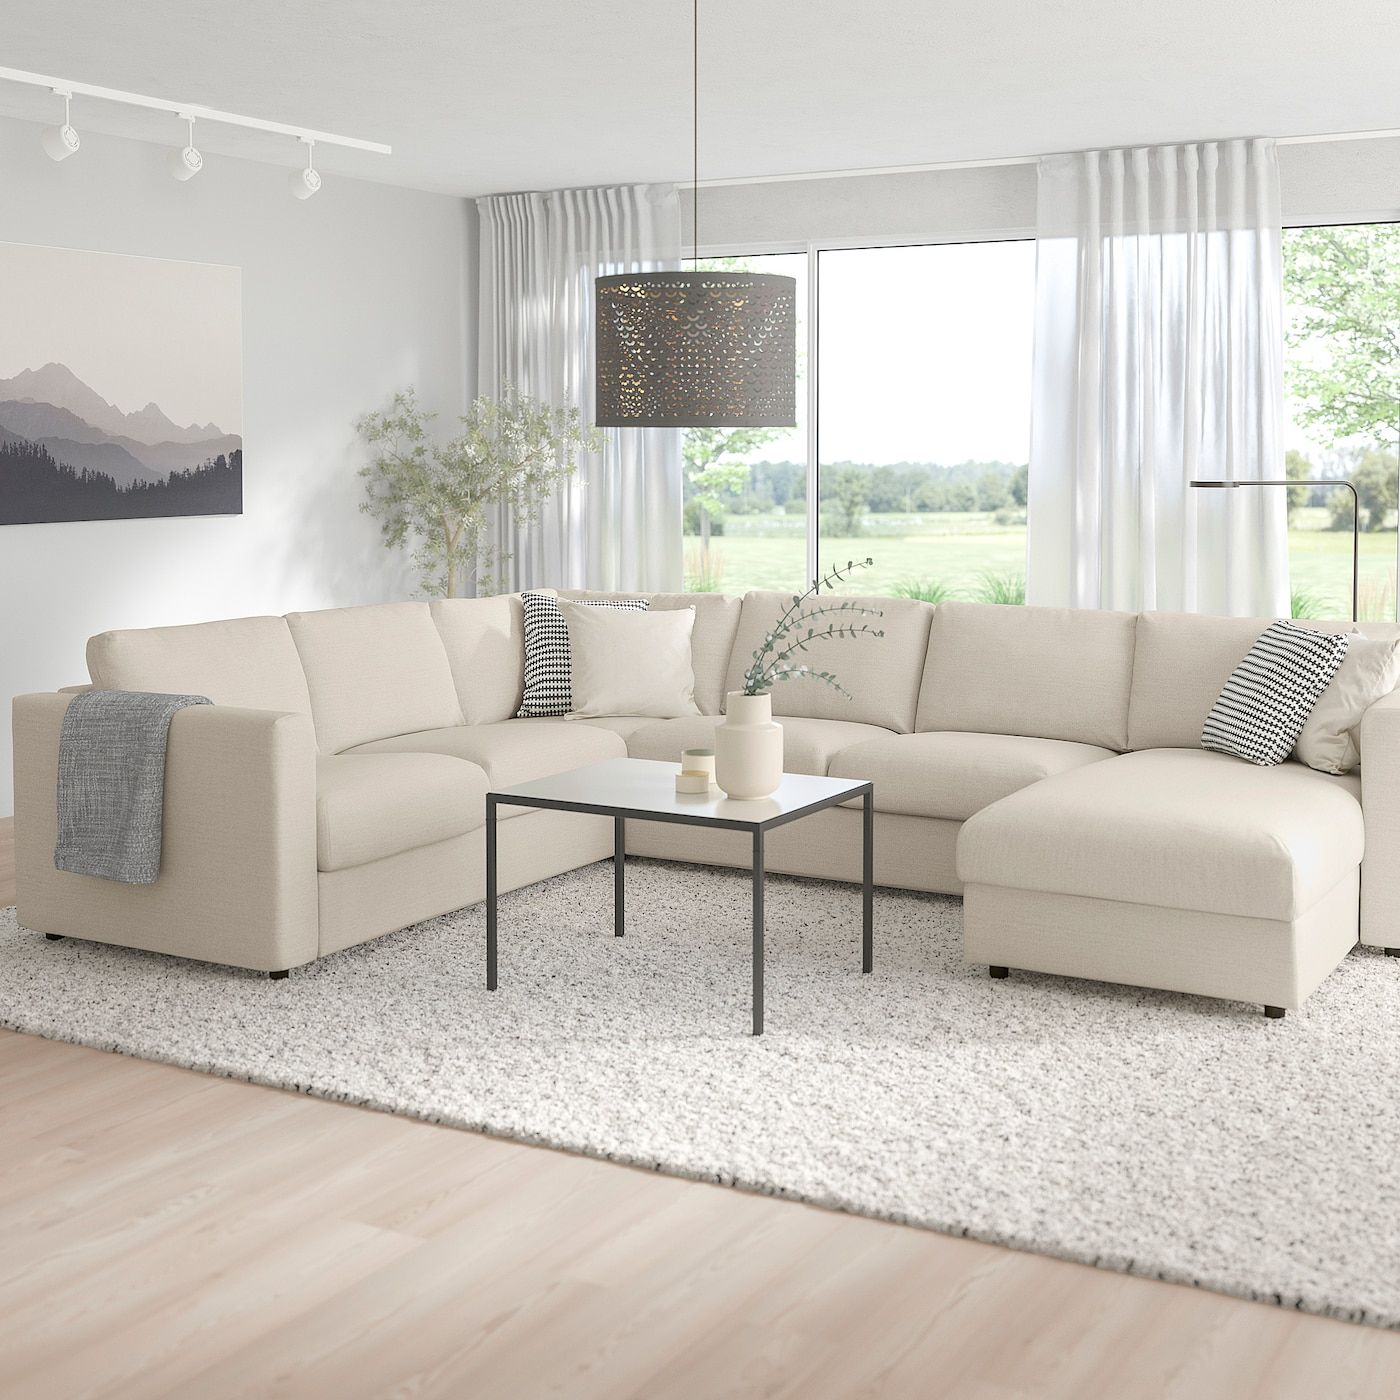 Vimle Corner Sofa Bed 5 Seat With Chaise Longue Gunnared Beige Ikea In 2020 Ecksofa Schlaffunktion U Formiges Sofa Sofa